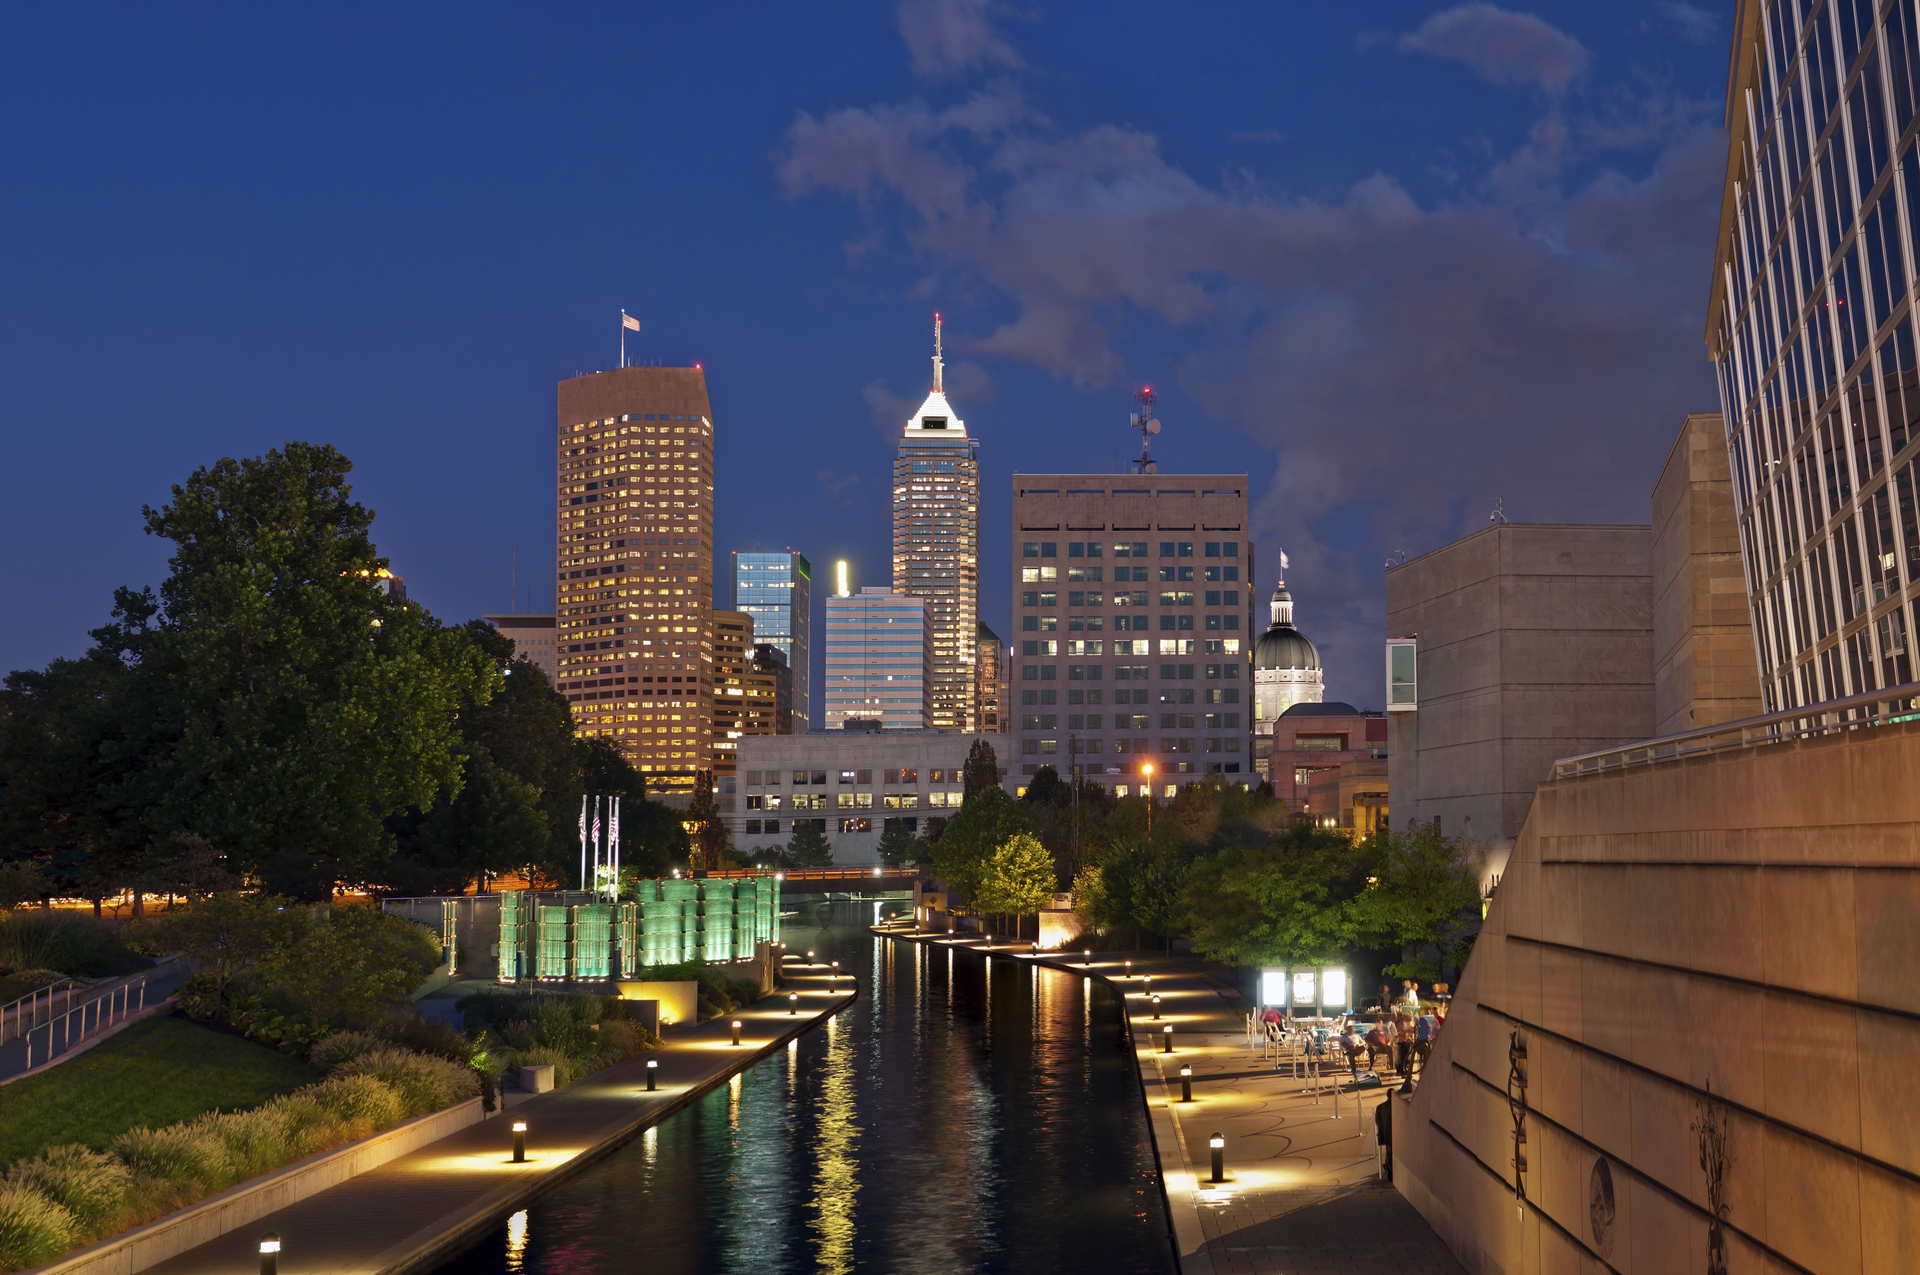 Indianapolis at Night with Canal